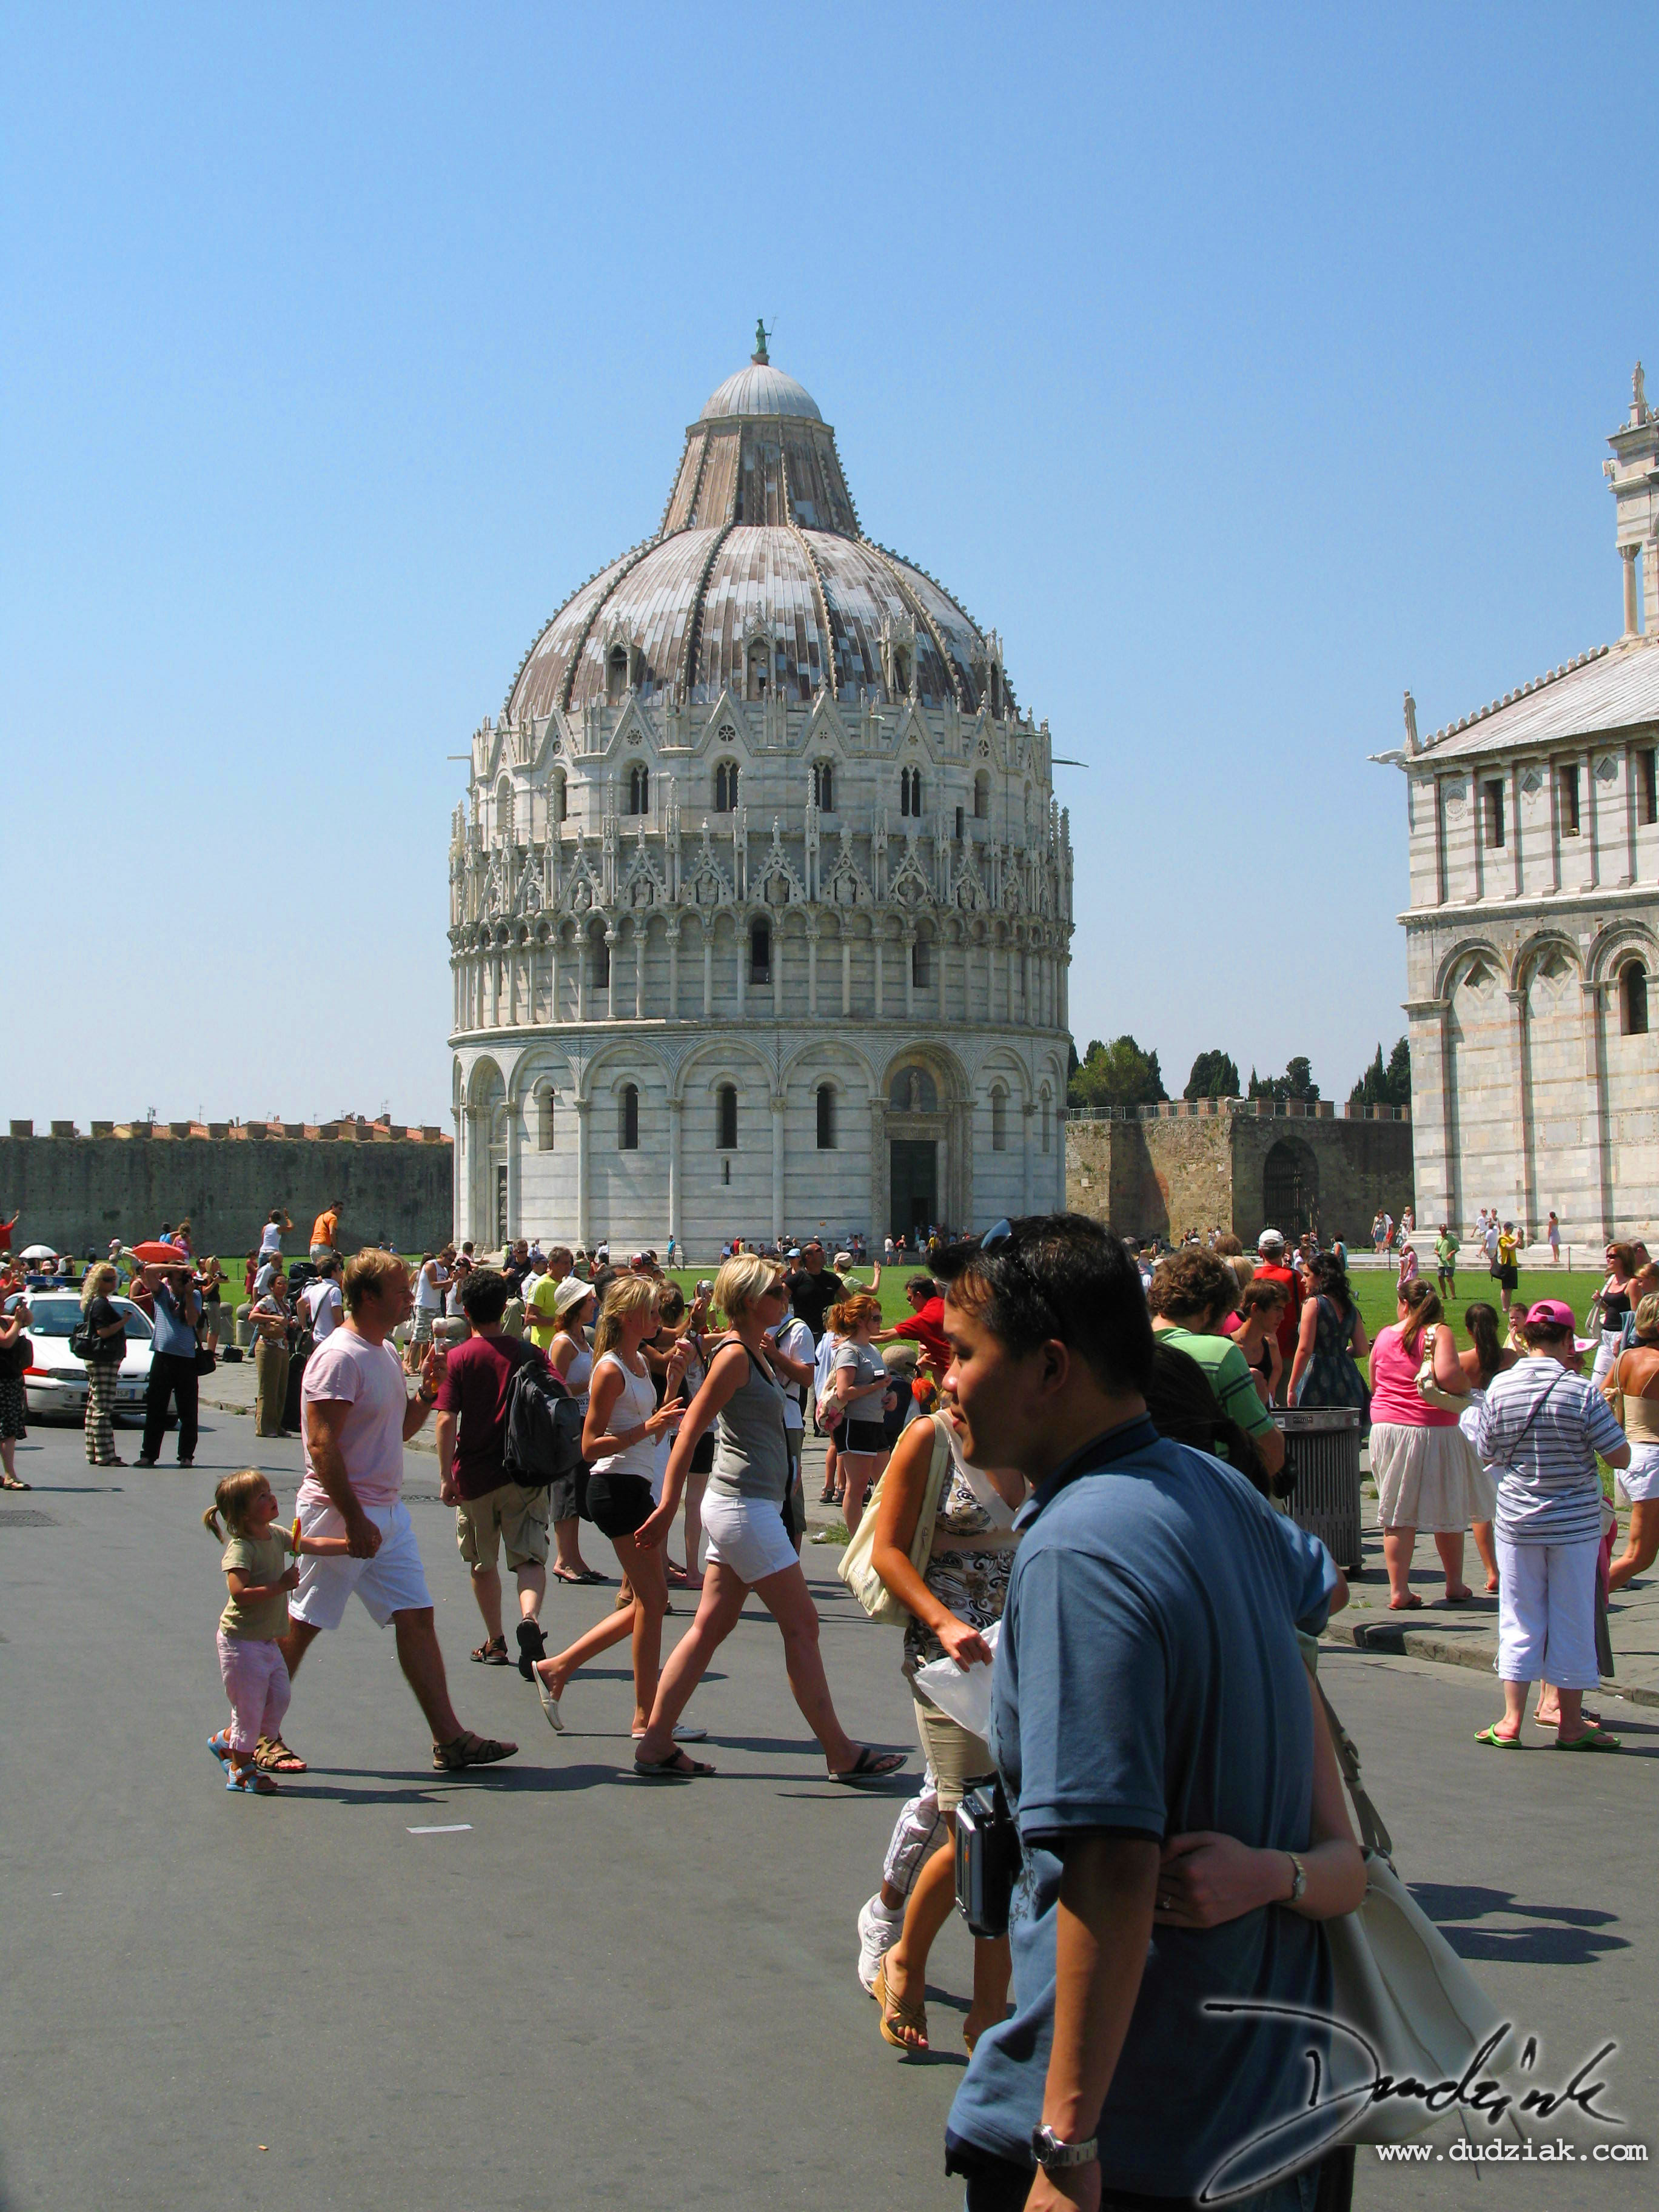 Picture of the Pisa Baptistery as part of the Campo dei Miracoli (field of miracles) in Pisa, Italy.